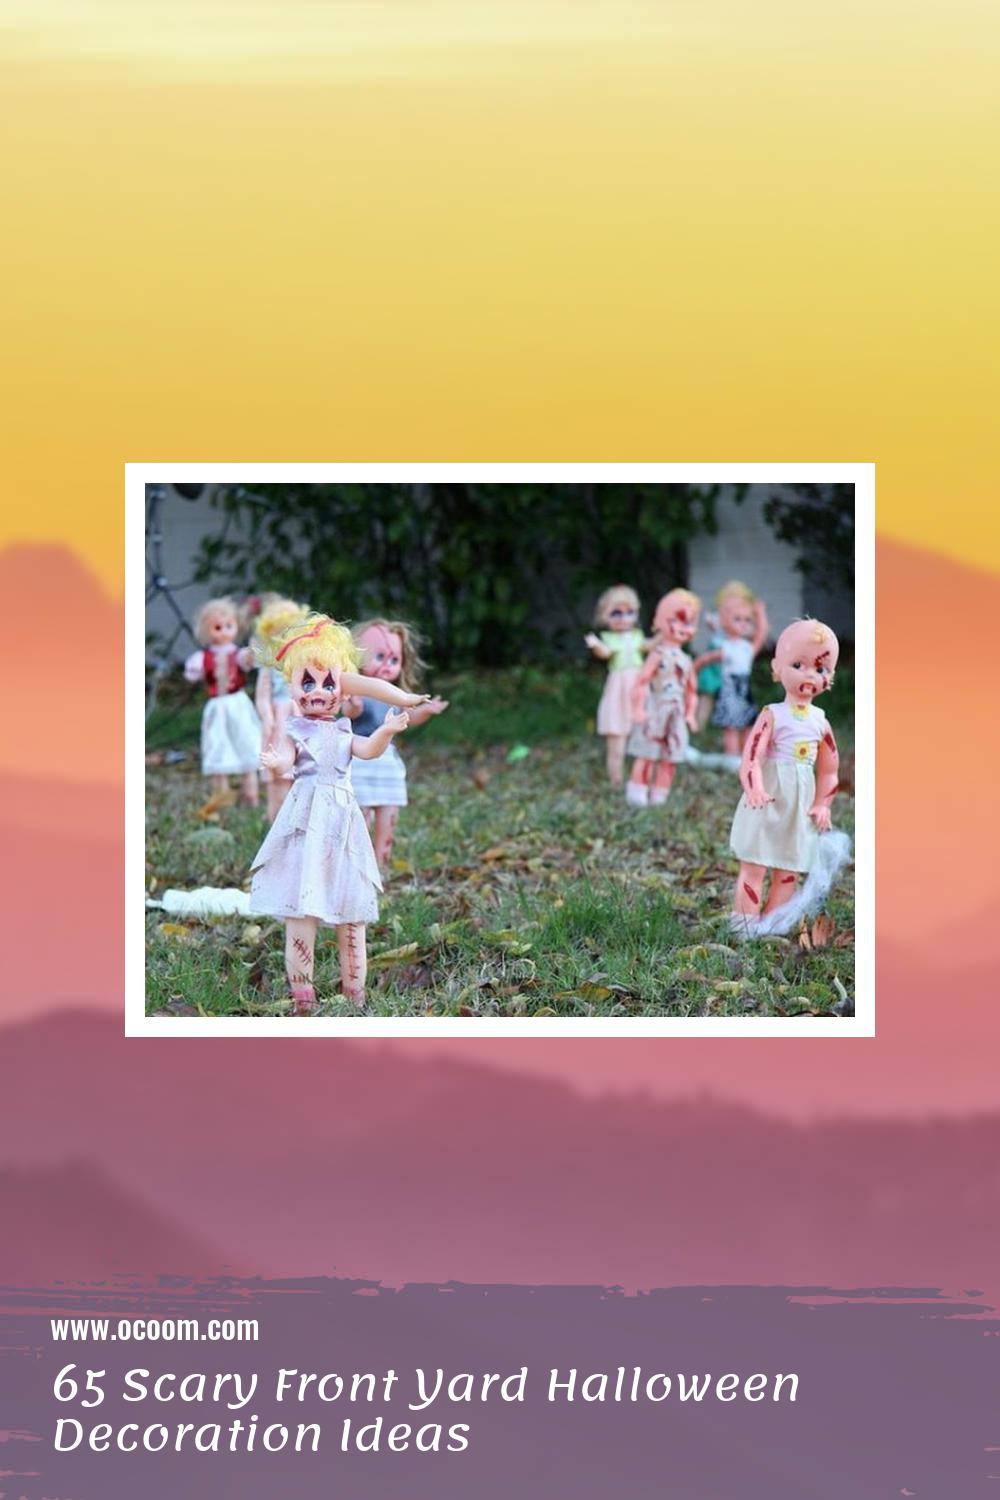 65 Scary Front Yard Halloween Decoration Ideas 51